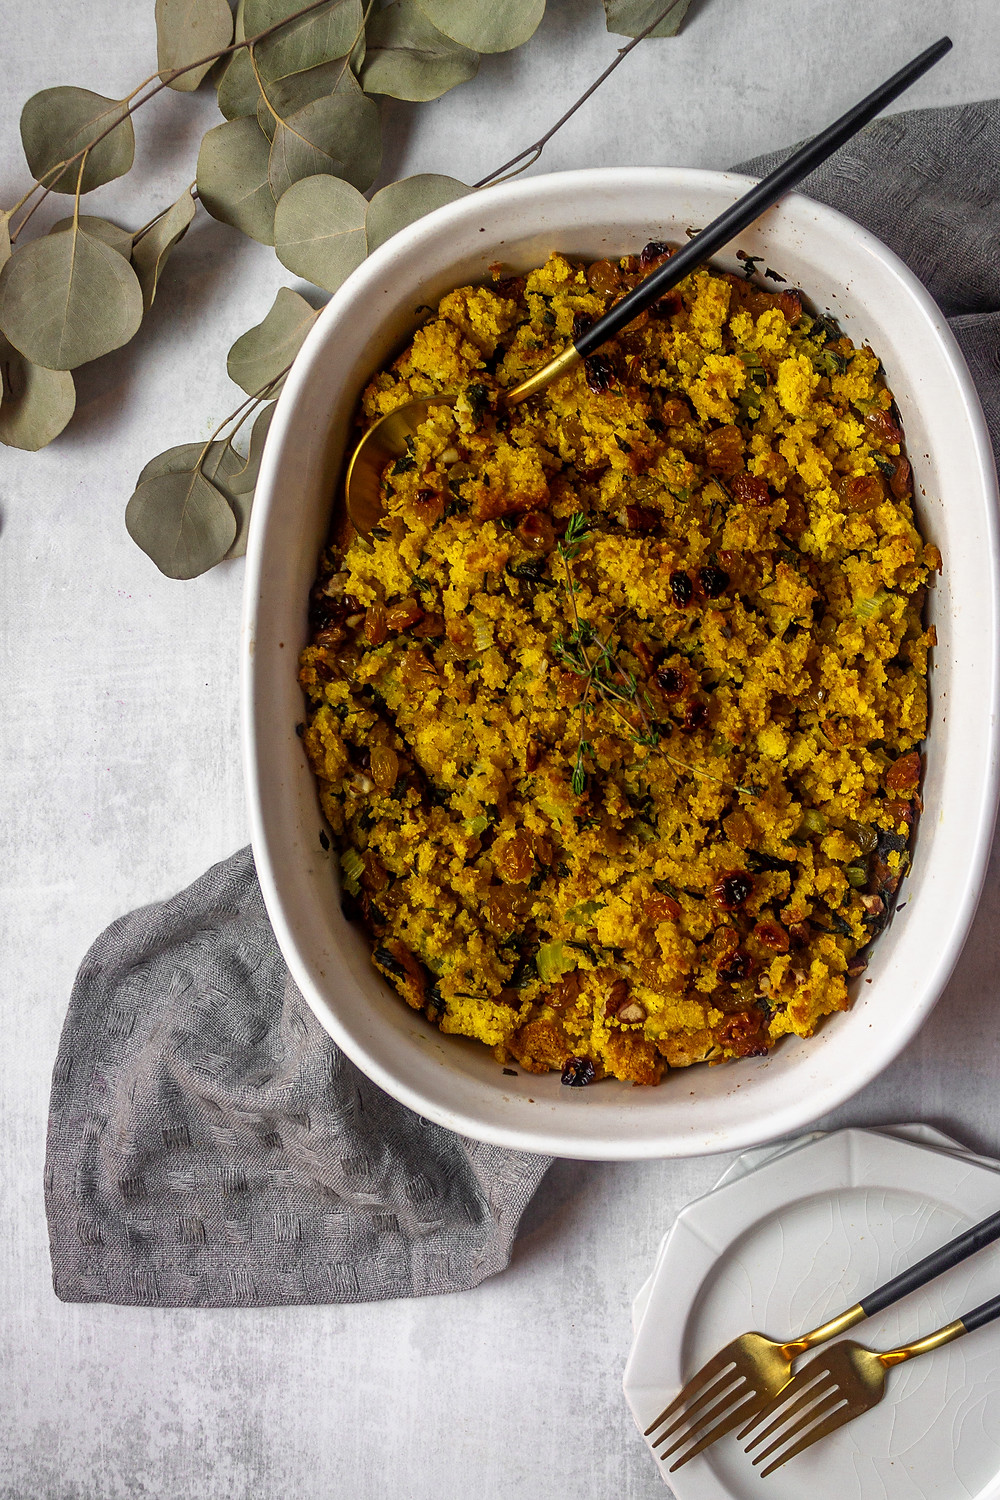 Gluten Free Low FODMAP Friendly Cornbread Stuffing - A Low FODMAP Thanksgiving Side Dish - Pretty Delicious Life - I might be one of the few, but I am so excited for Thanksgiving this year. Although it will look very different from Thanksgivings past, I've been really enjoying whipping up some of my favorite low FODMAP